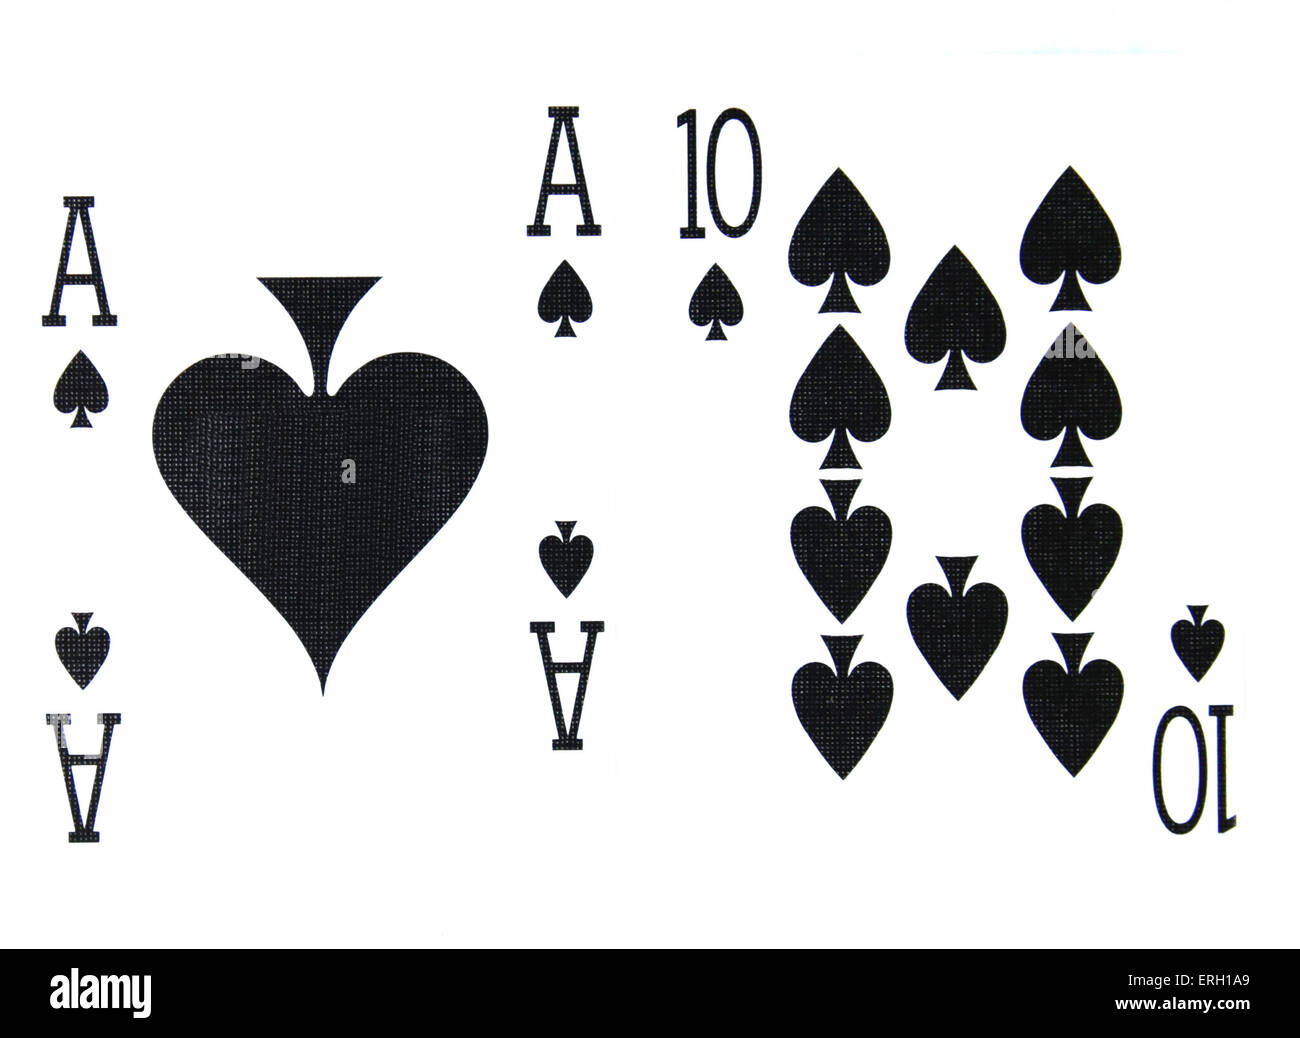 best classic winning blackjack combination ten and ace of spades - Stock Image